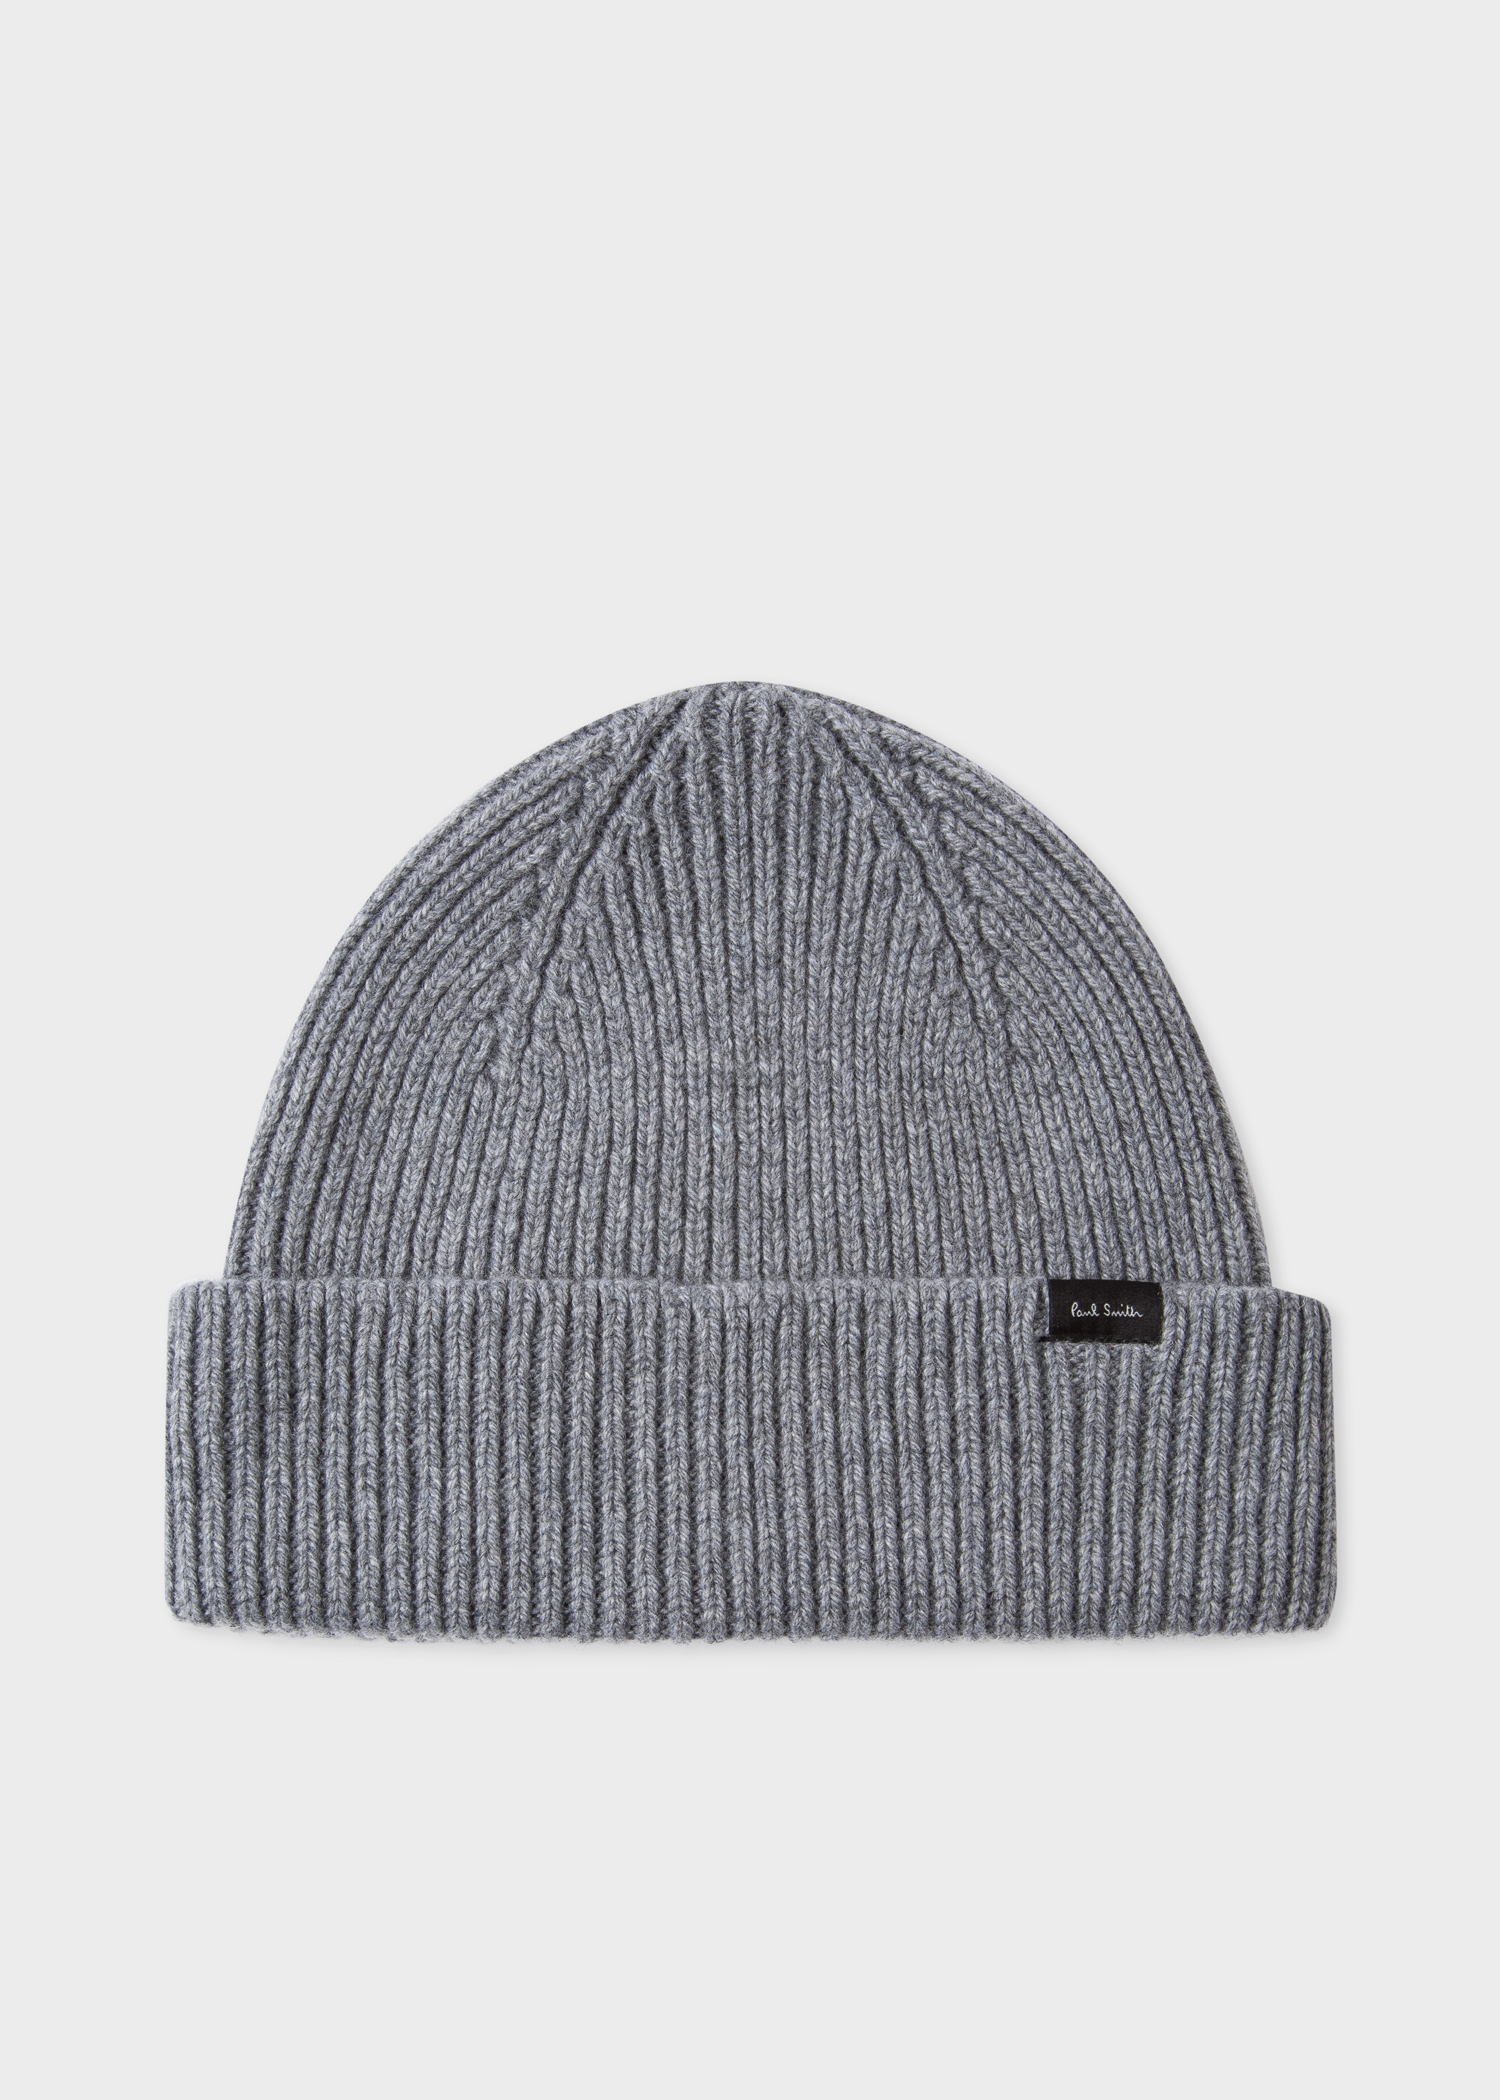 4d686c53 Men's Grey Cashmere-Blend Ribbed Beanie Hat - Paul Smith US